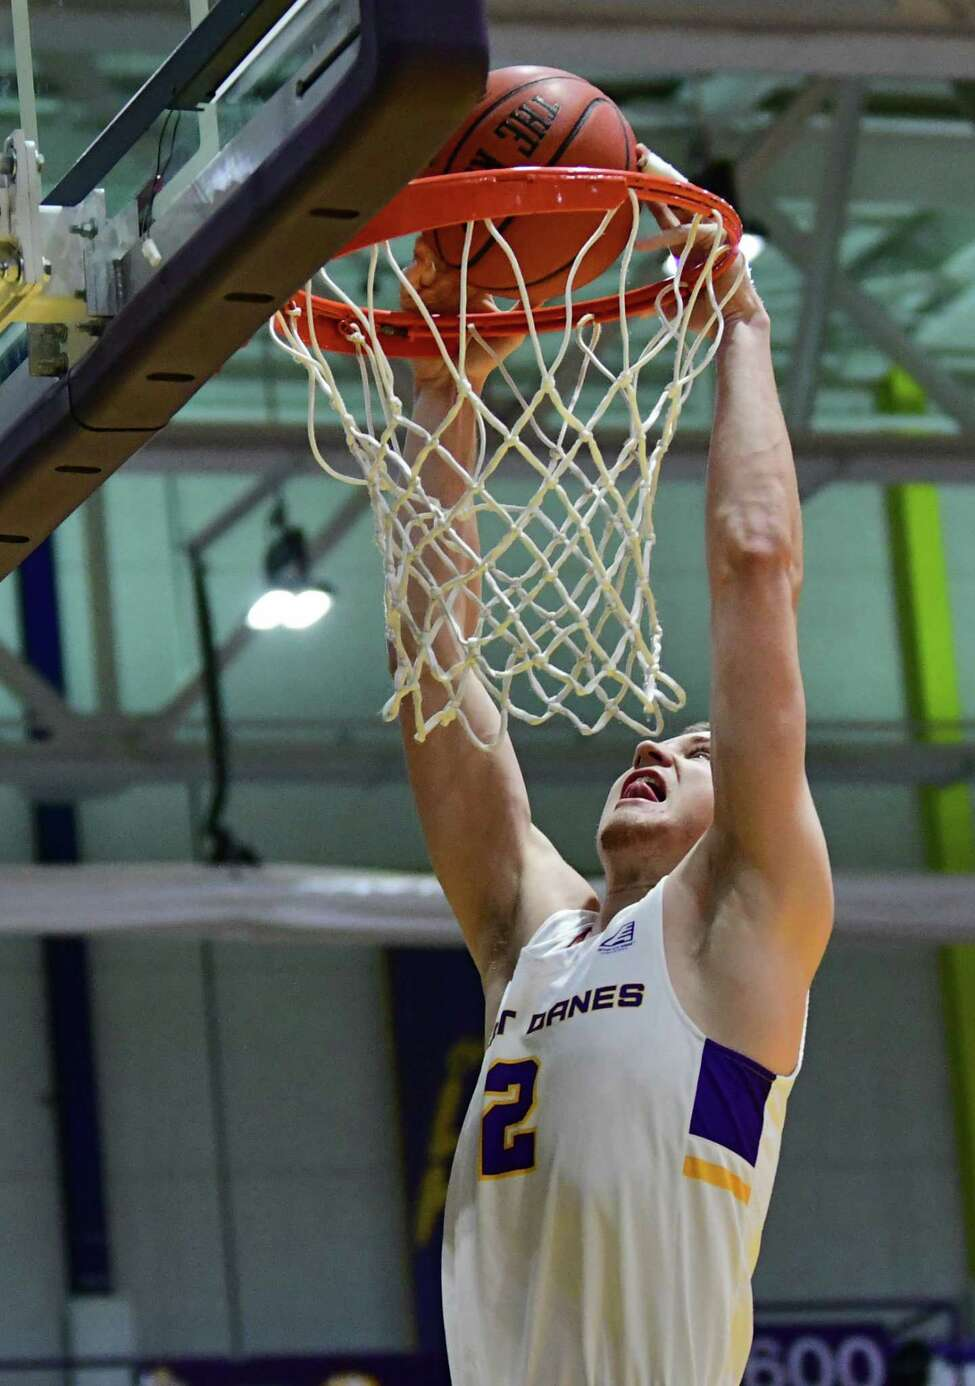 University at Albany's Trey Hutcheson dunks the ball during a basketball game against Canisius at the SEFCU Arena on Wednesday, Nov. 13, 2019 in Albany, N.Y. (Lori Van Buren/Times Union)